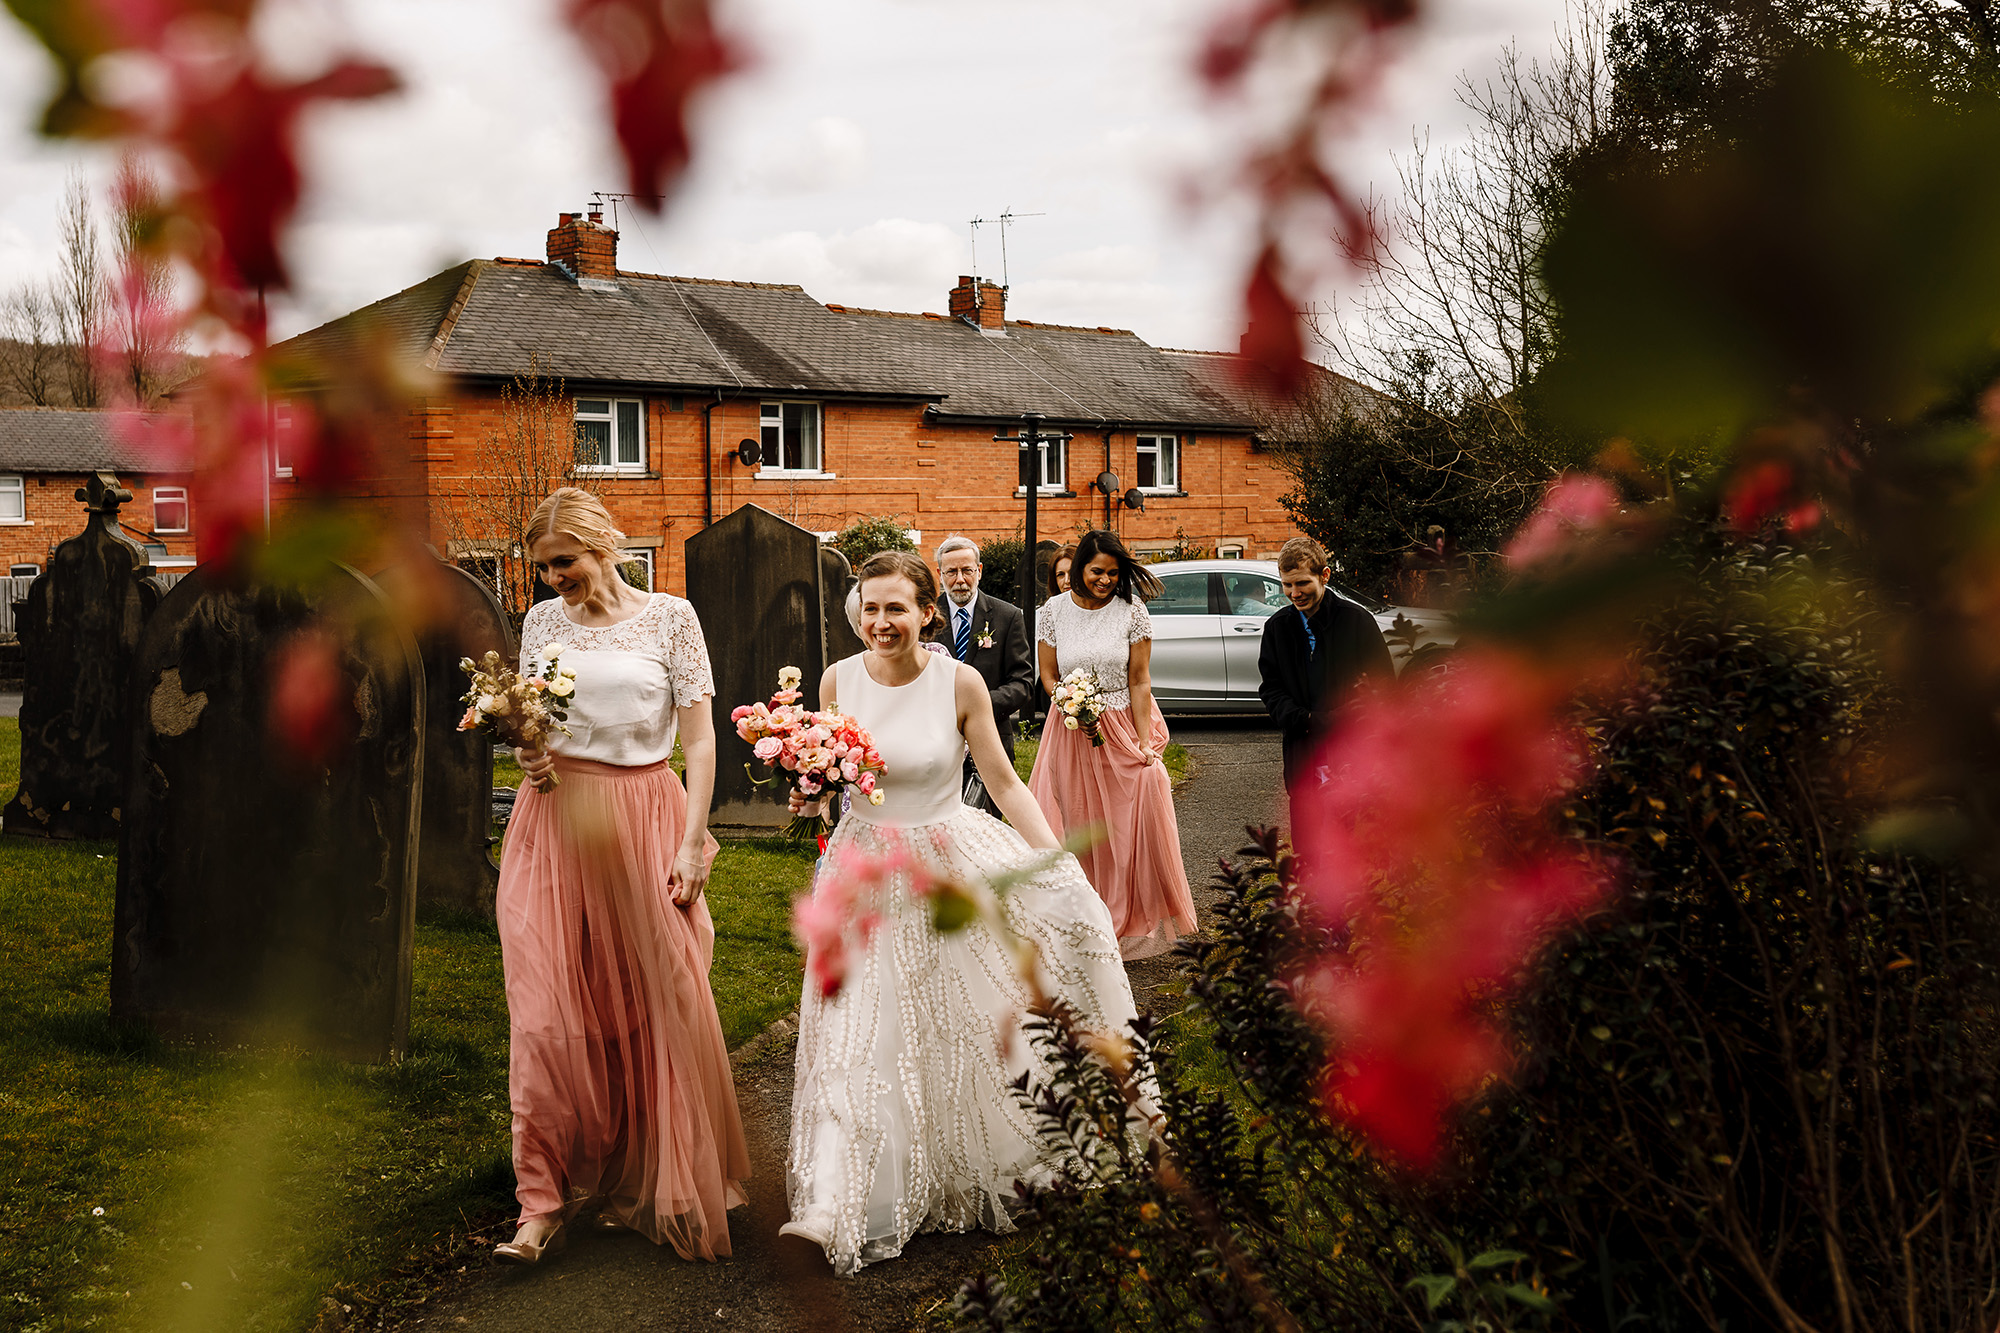 A smiling bride walking towards the church with her bridesmaids